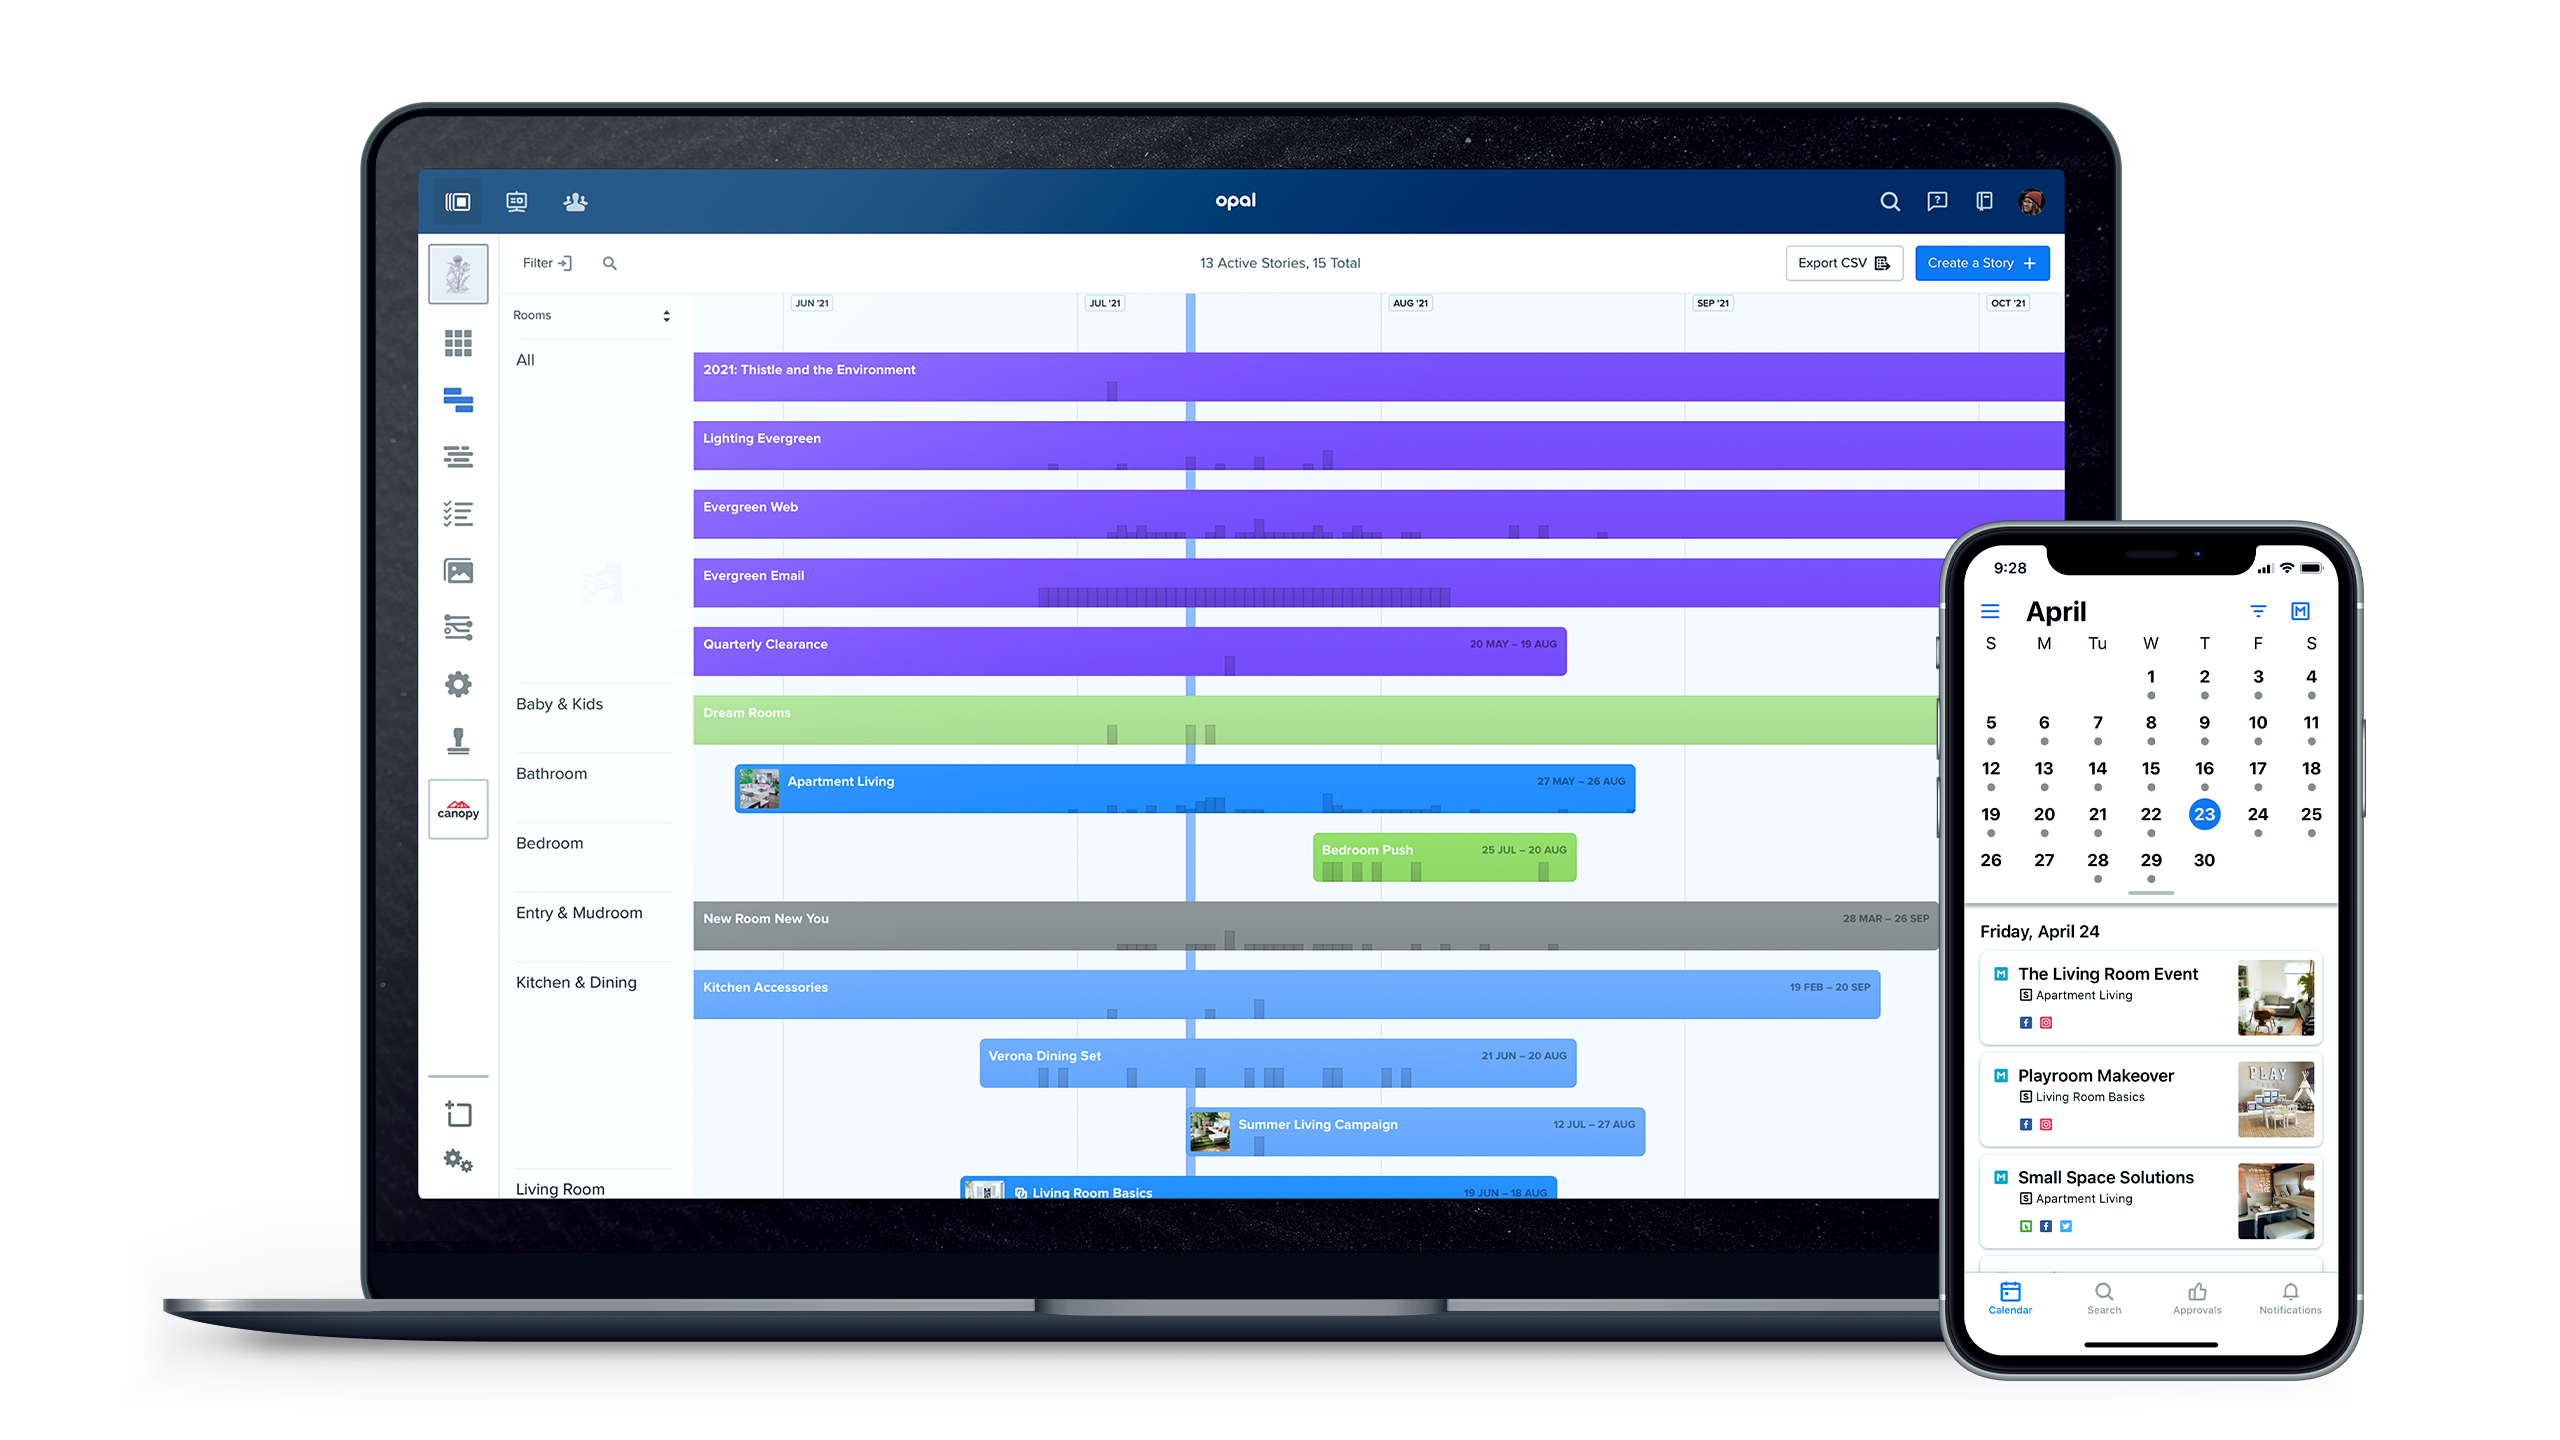 From Stories view, get visibility into all your brand campaigns, product launches, initiatives, or events that are taking place over time. A Story acts as a project space where your team can stay organized and efficient.